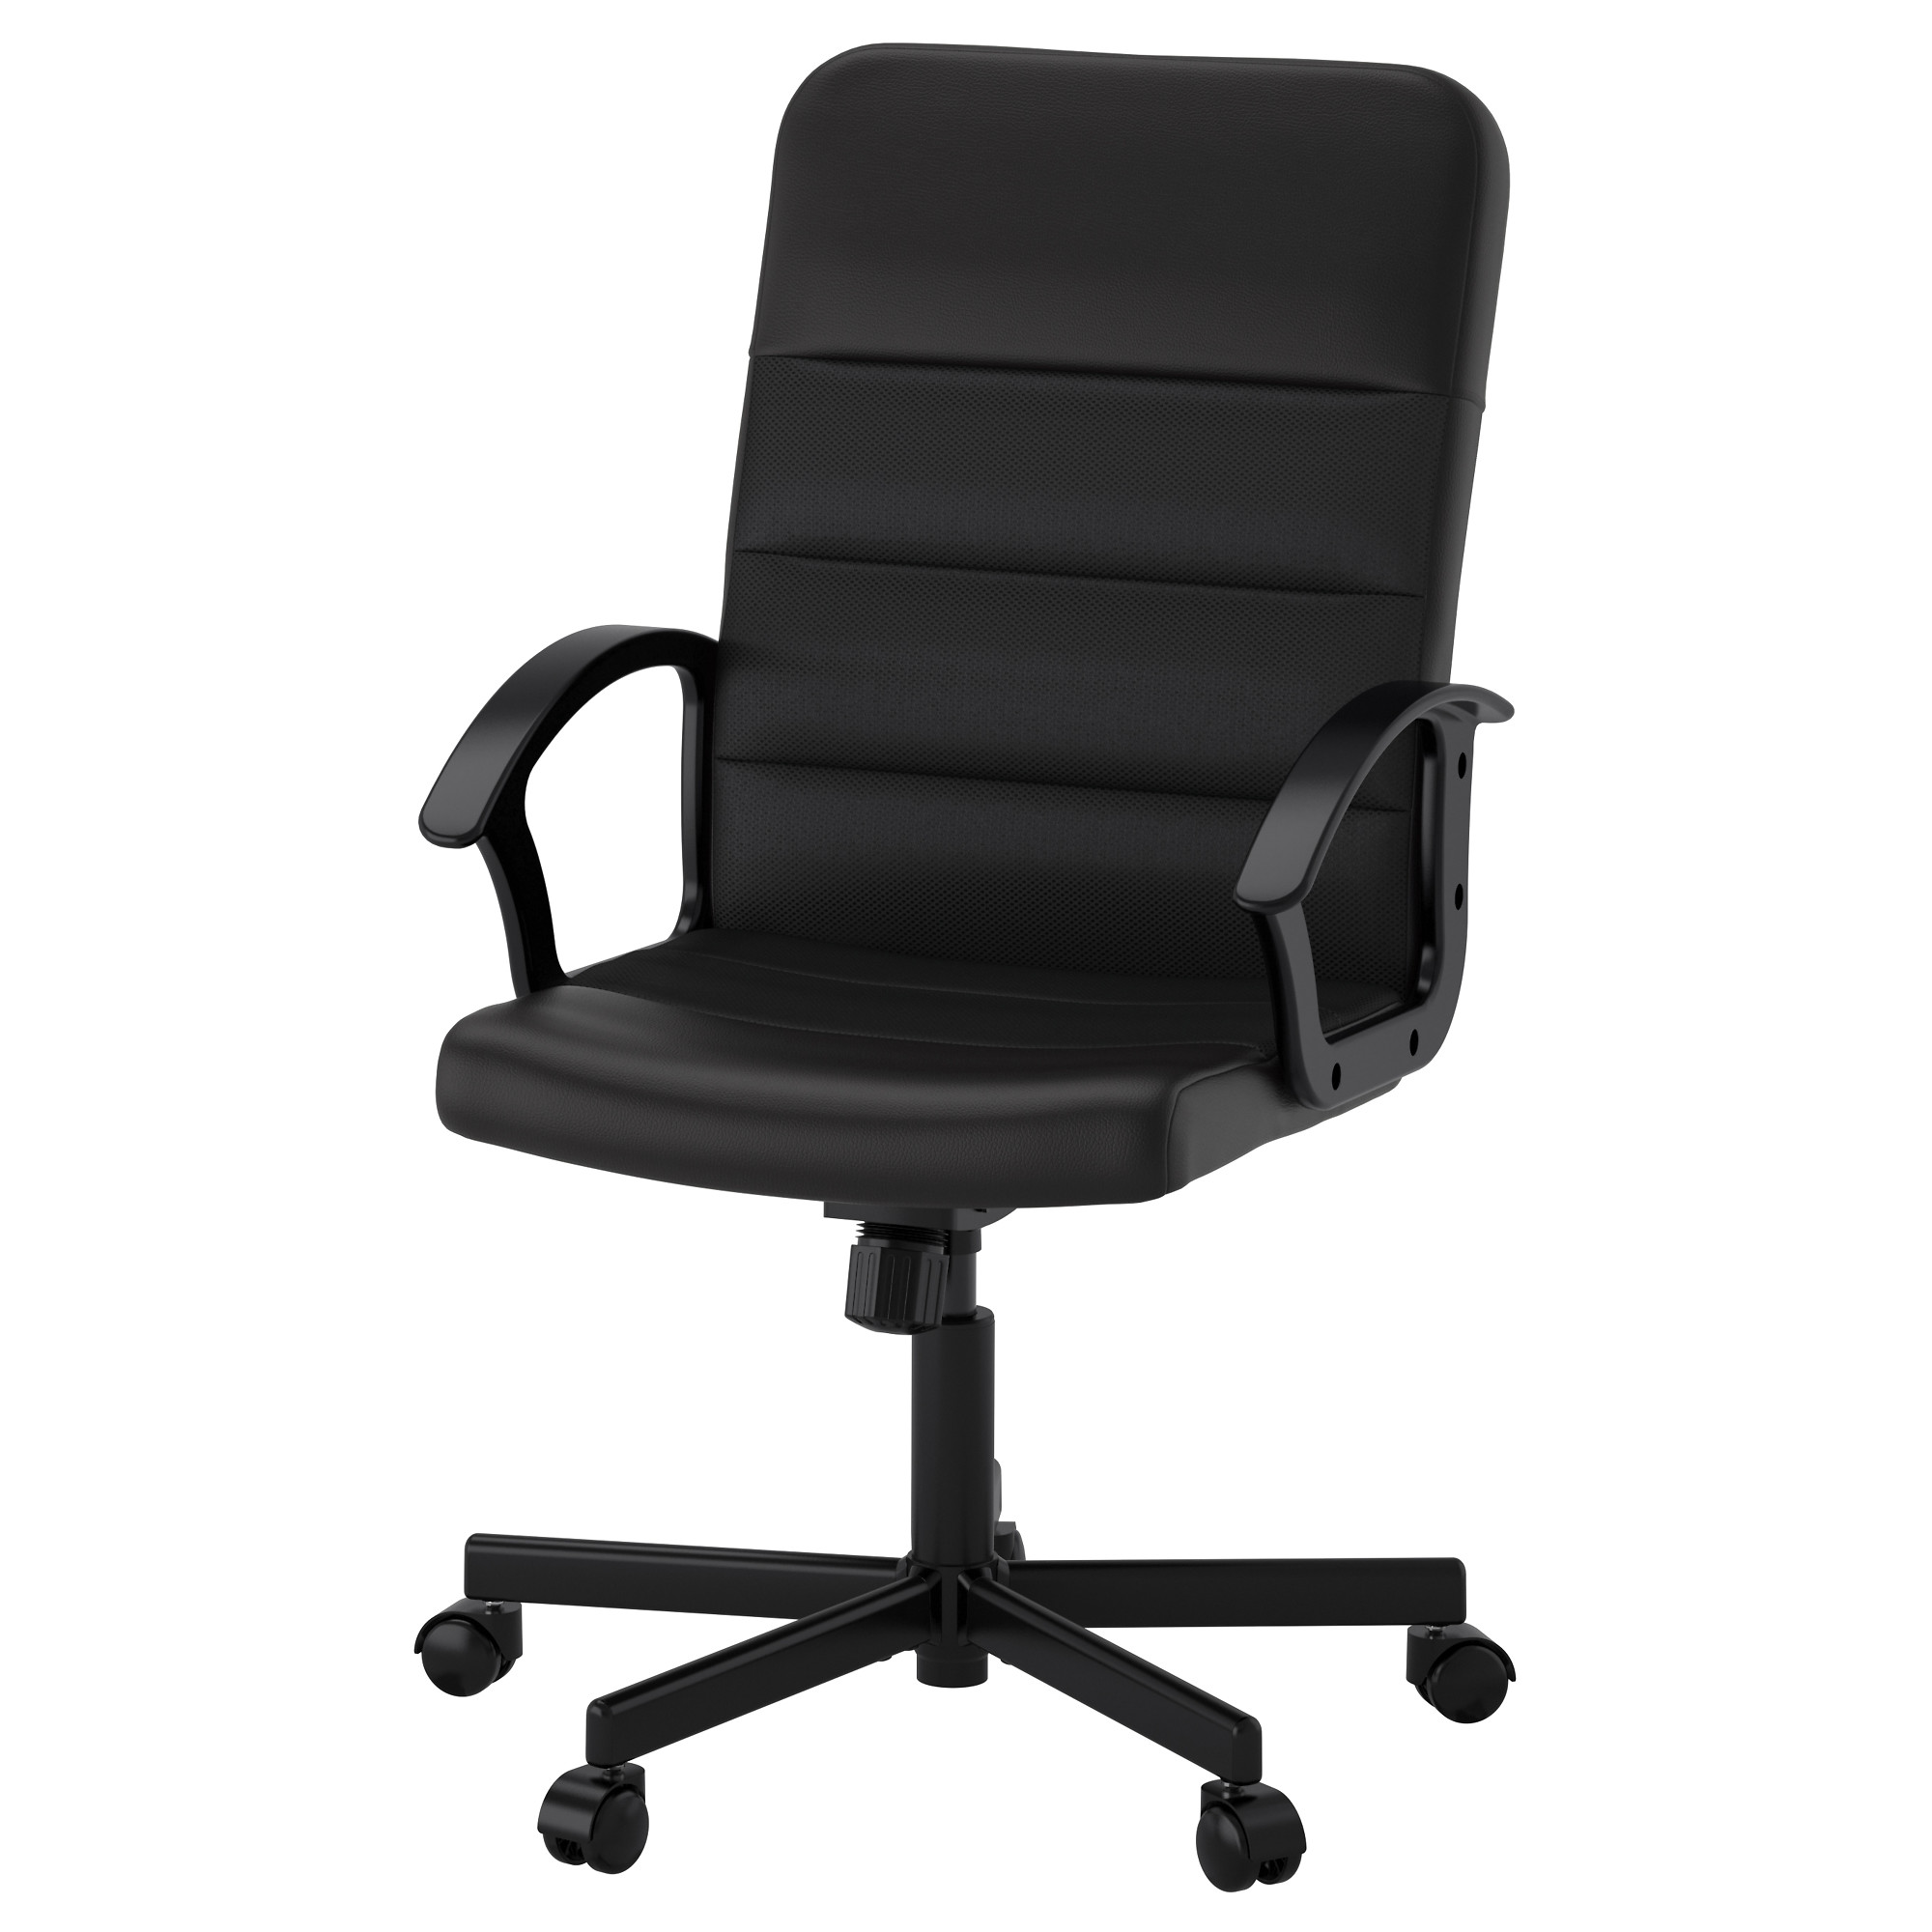 swivel chairs renberget swivel chair, bomstad black tested for: 242 lb 8 oz width: 23 RZERGIG